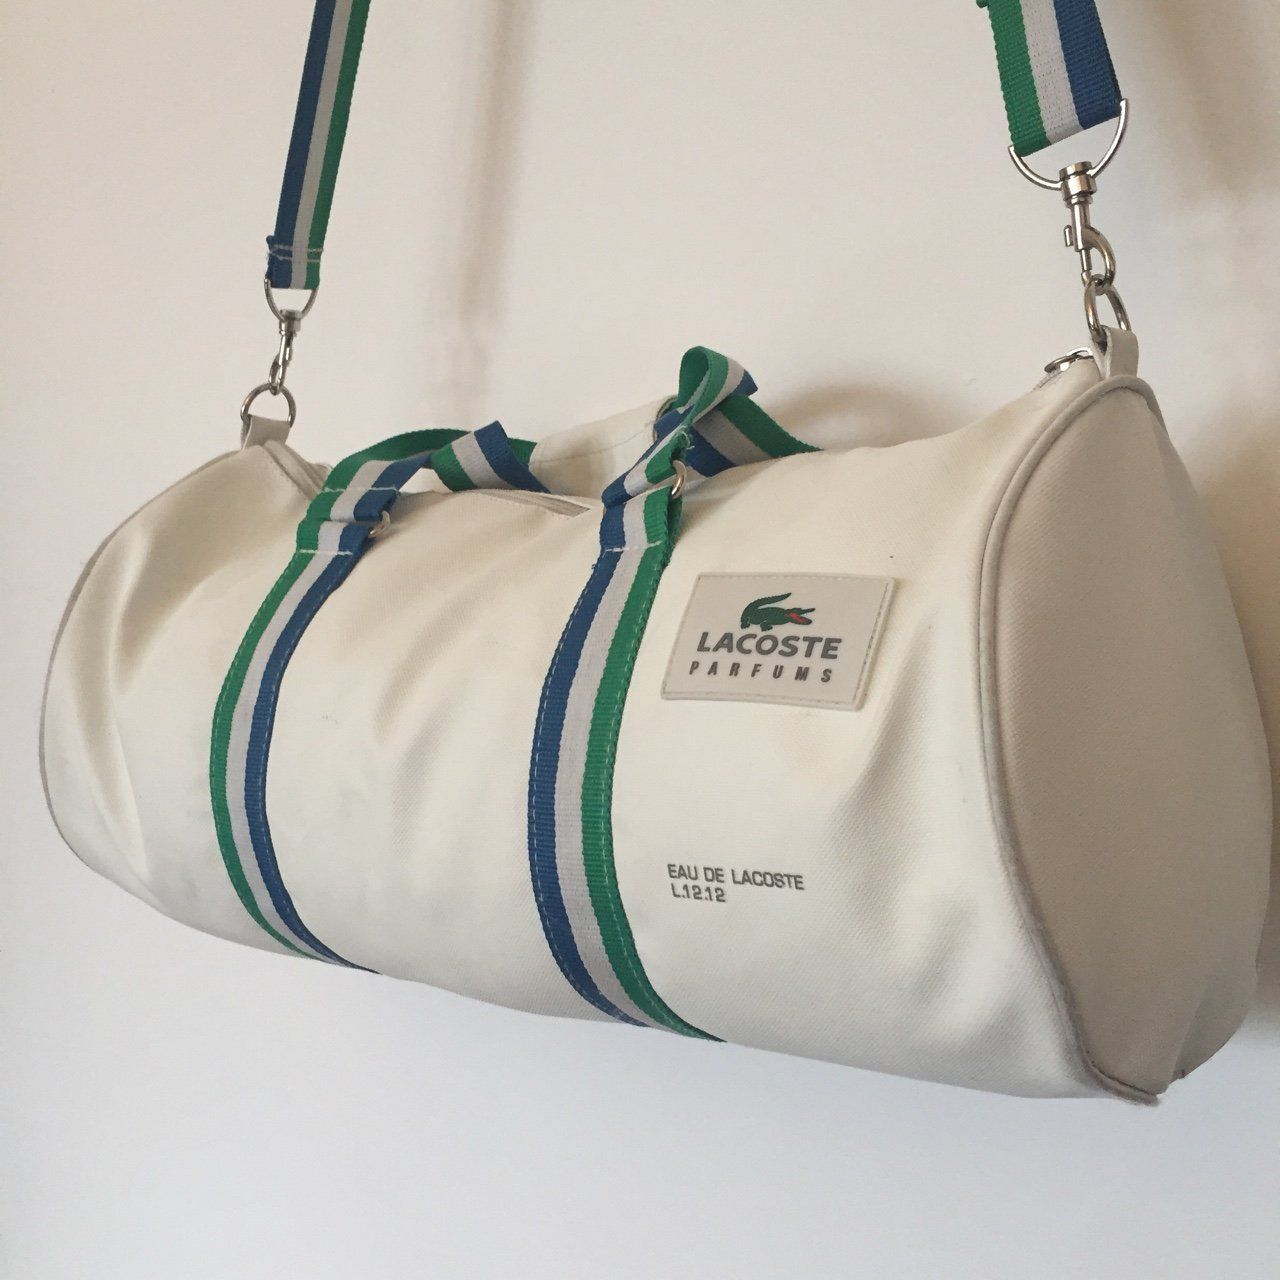 e17c928f5475b Vintage leather Lacoste duffle bag   gym bag